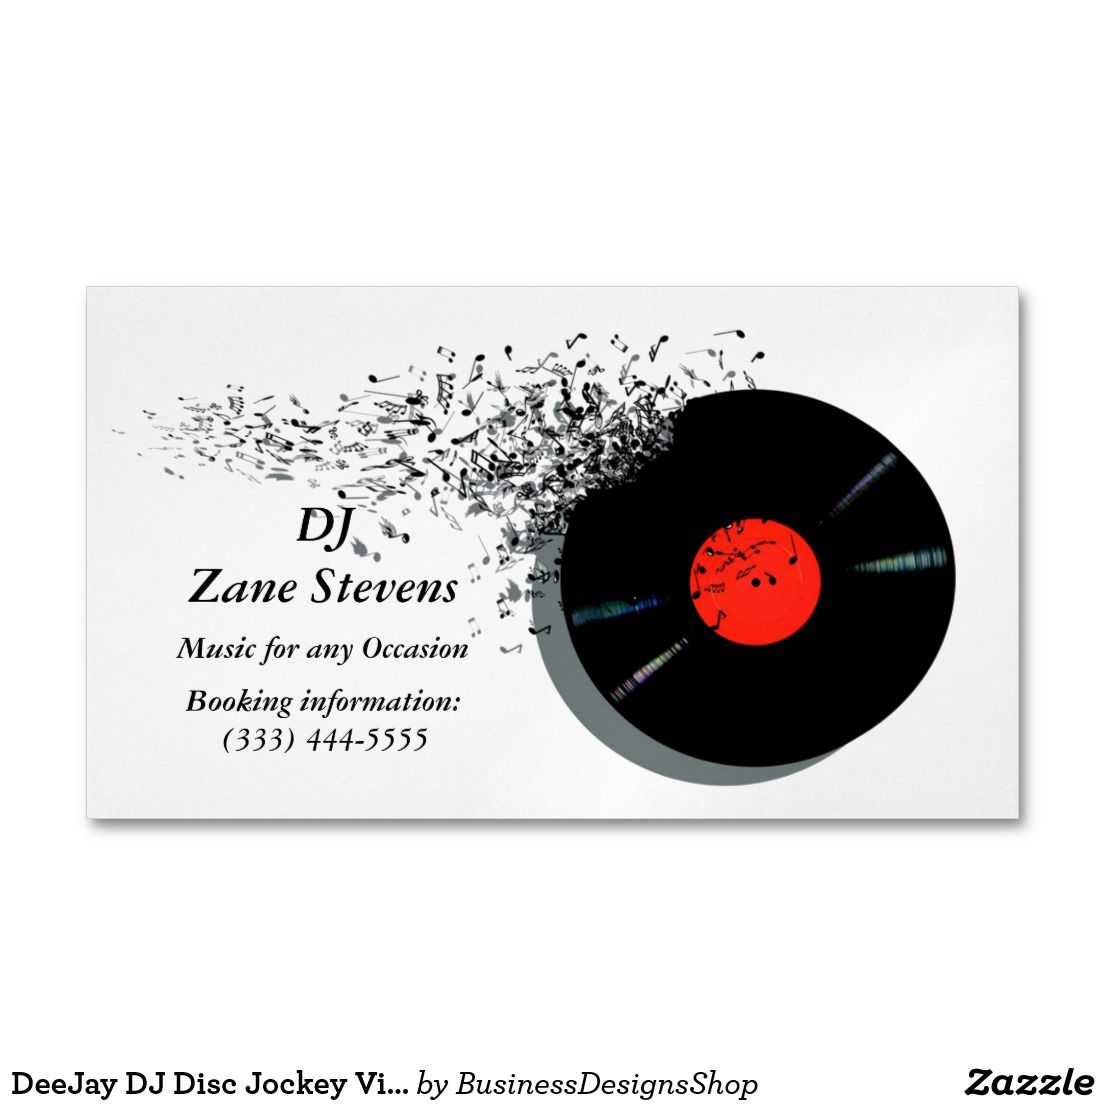 DeeJay DJ Disc Jockey Vinyl Record Business Card Magnet